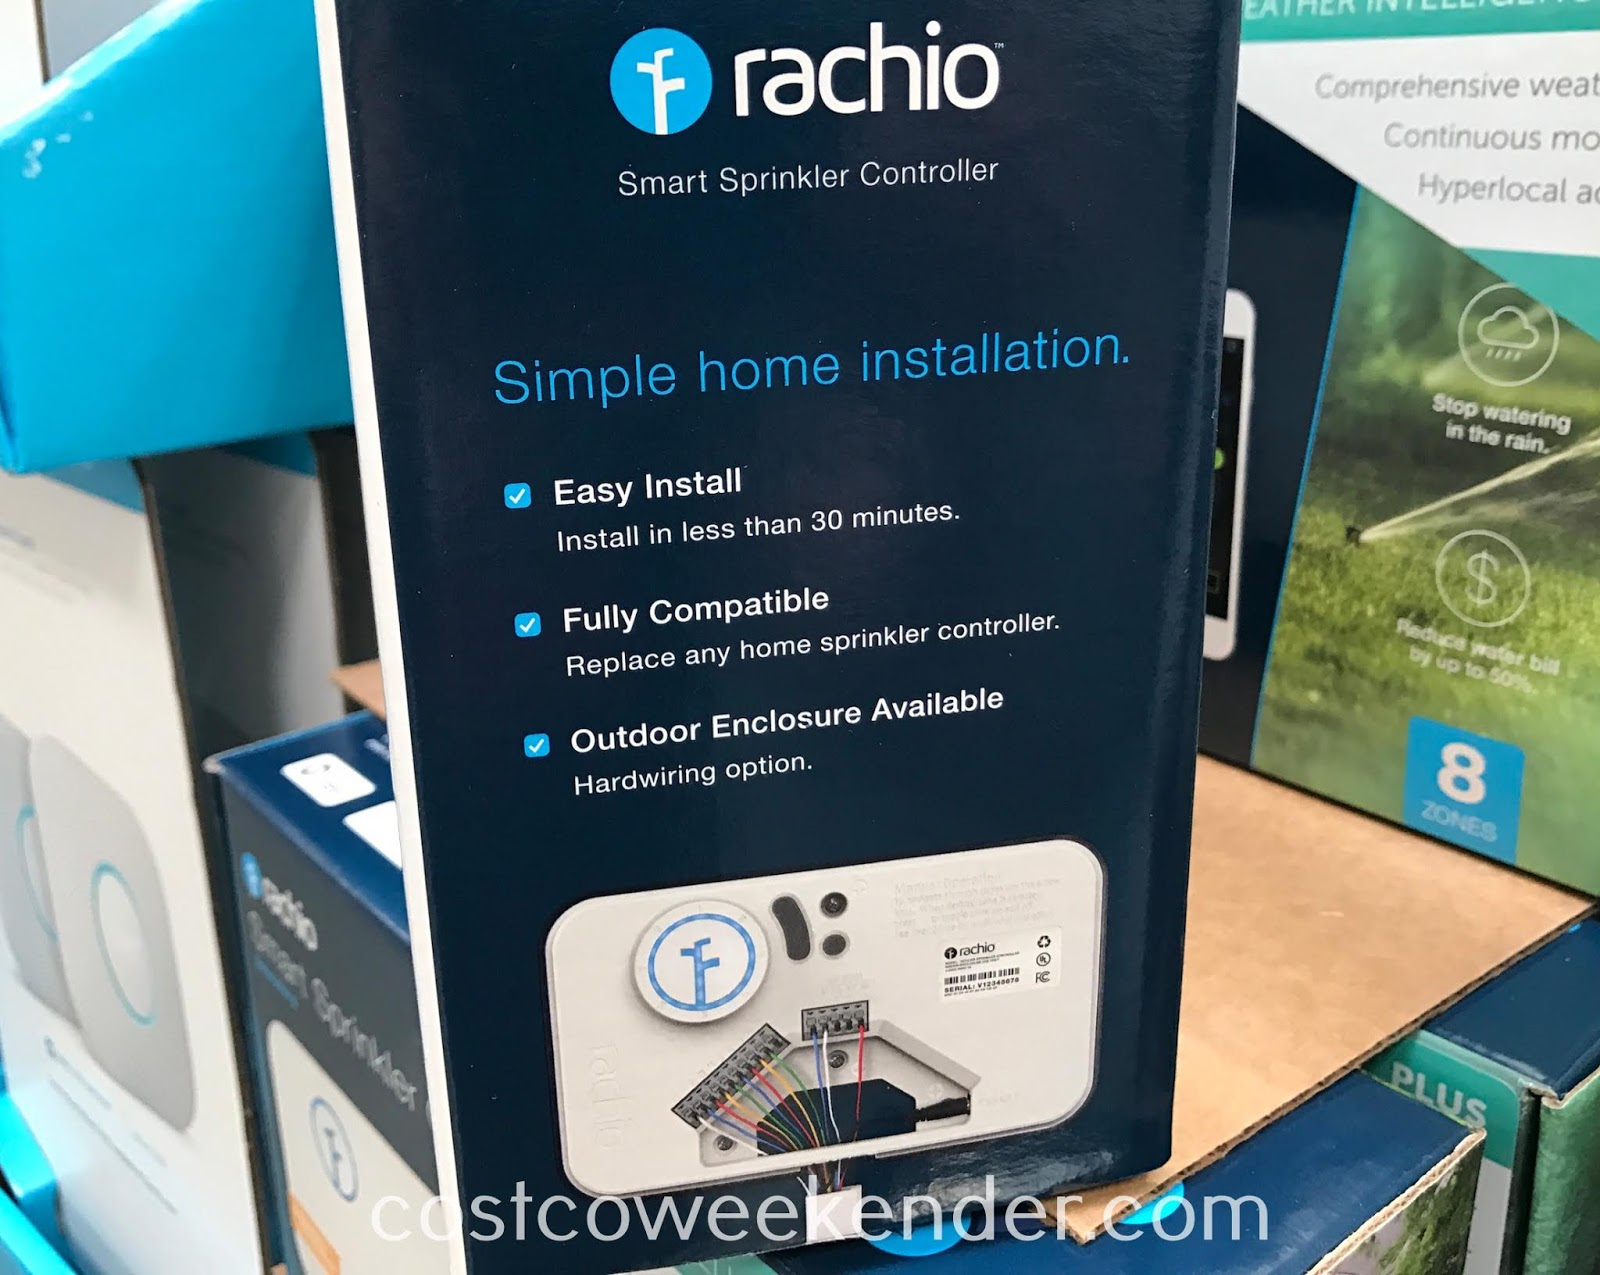 Rachio Smart Sprinkler Controller: great for any home's backyard or garden